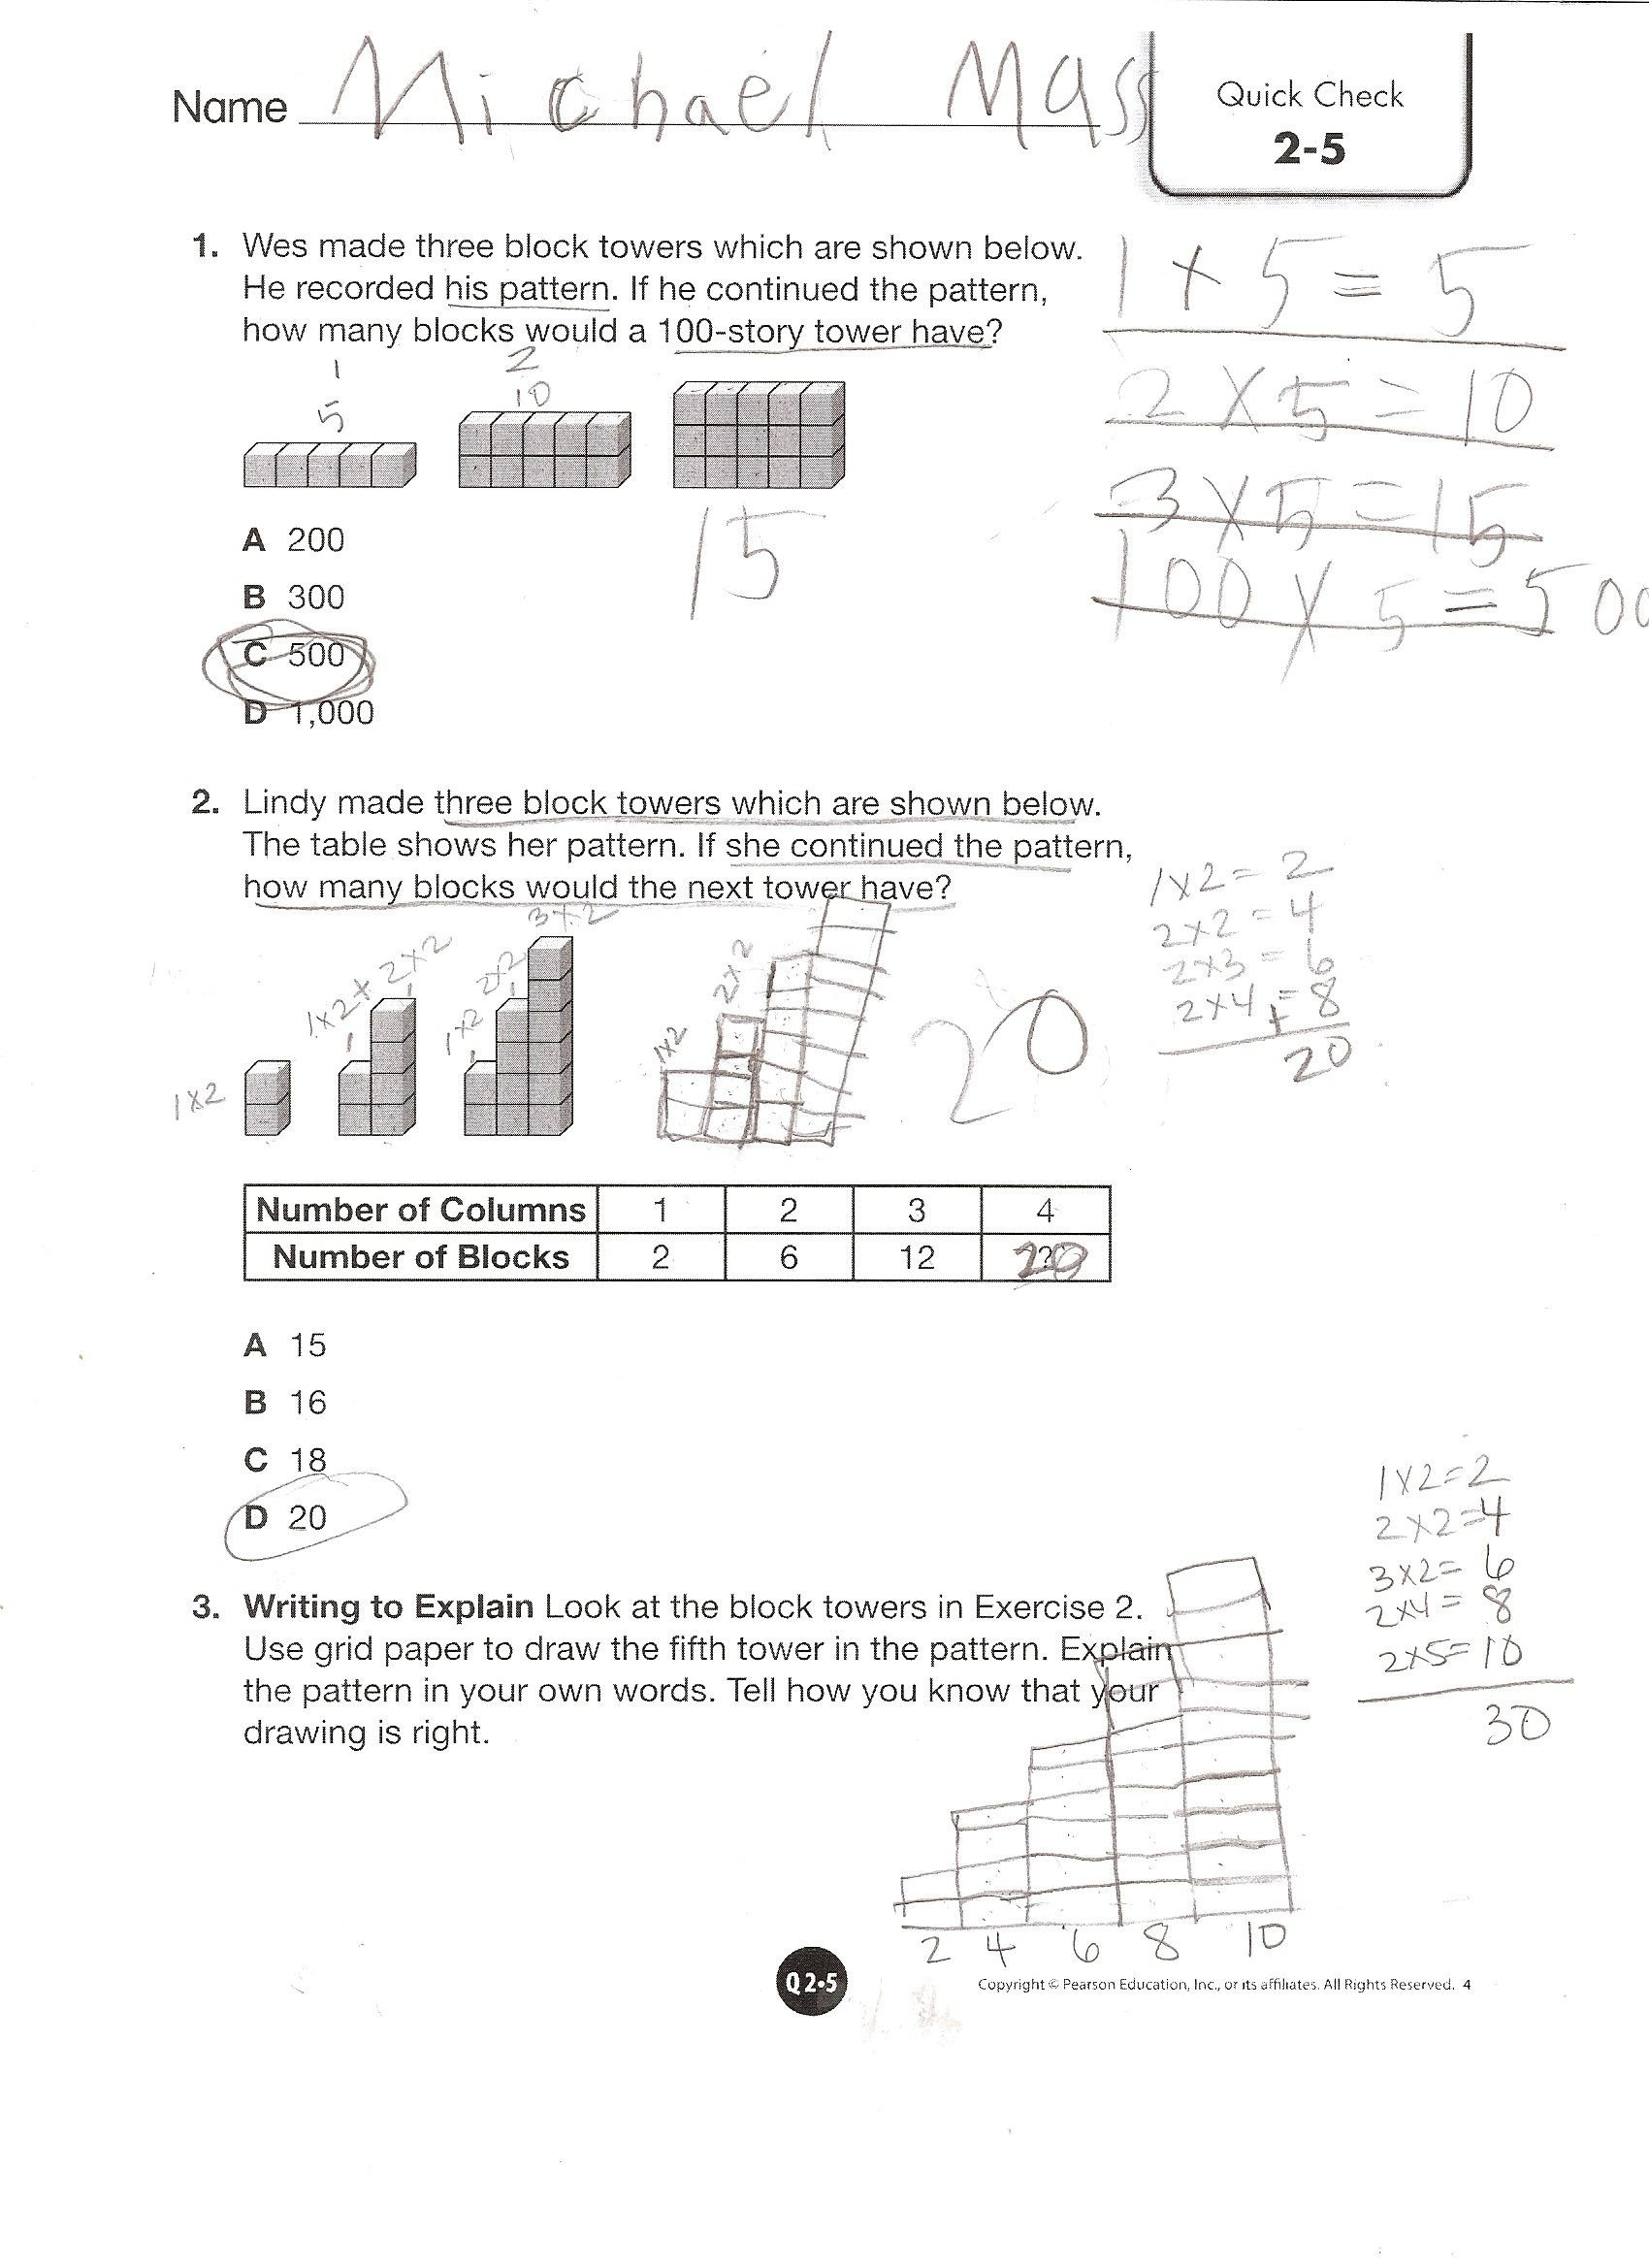 Envision Math 4th Grade Worksheets Envision Math Grade topic Quick Check Worksheets Cm Squared